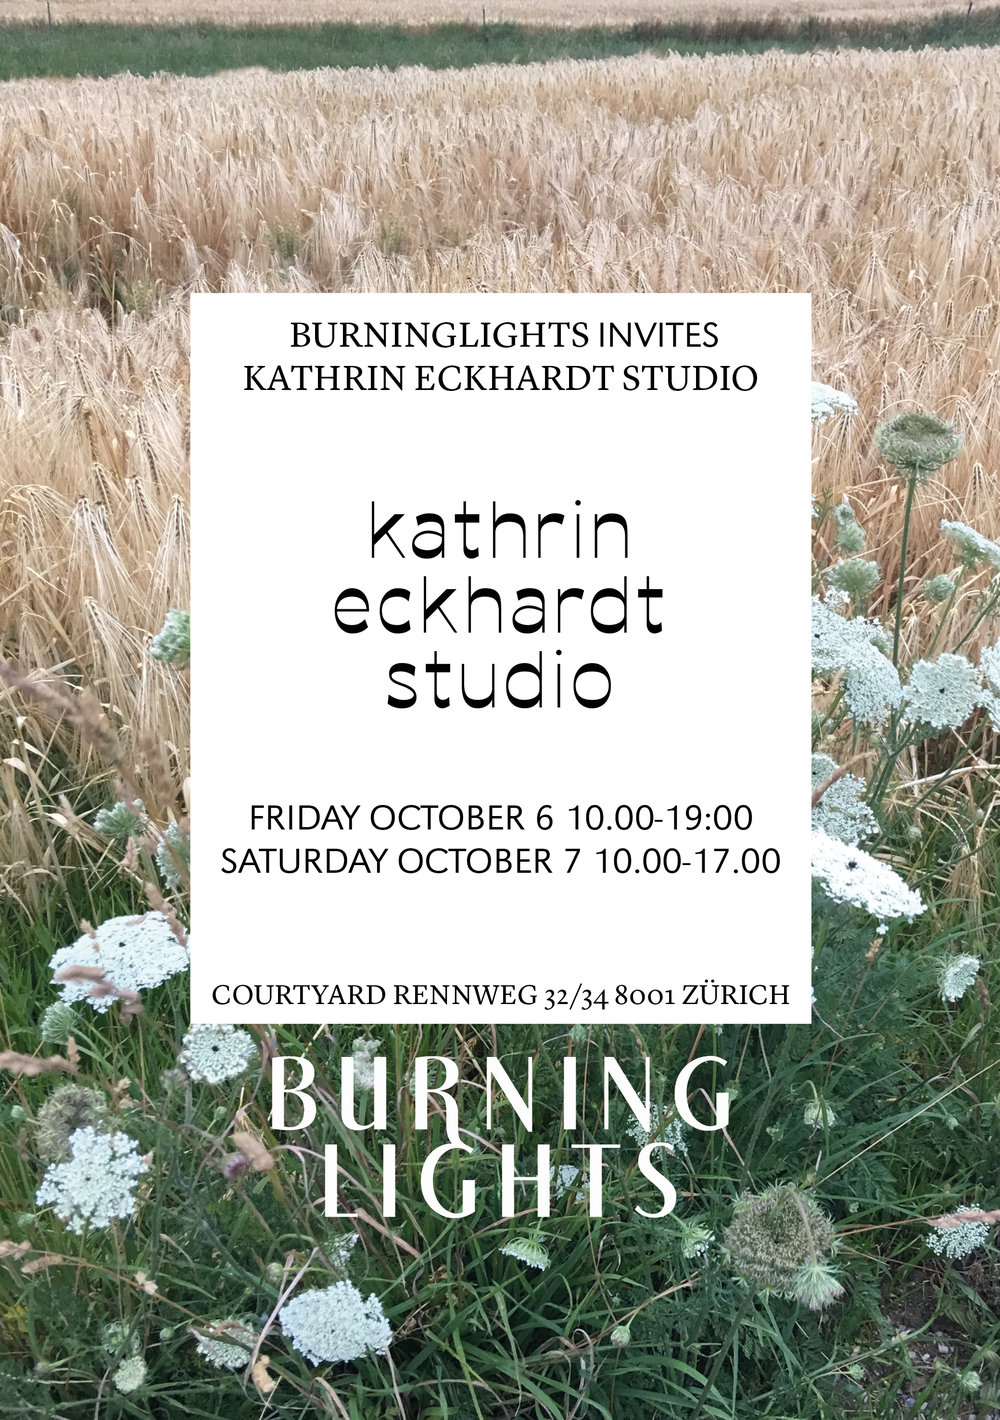 BURNINGLIGHTS_INVITES_KATHRINECKHARDT_OKTFIELD.jpg